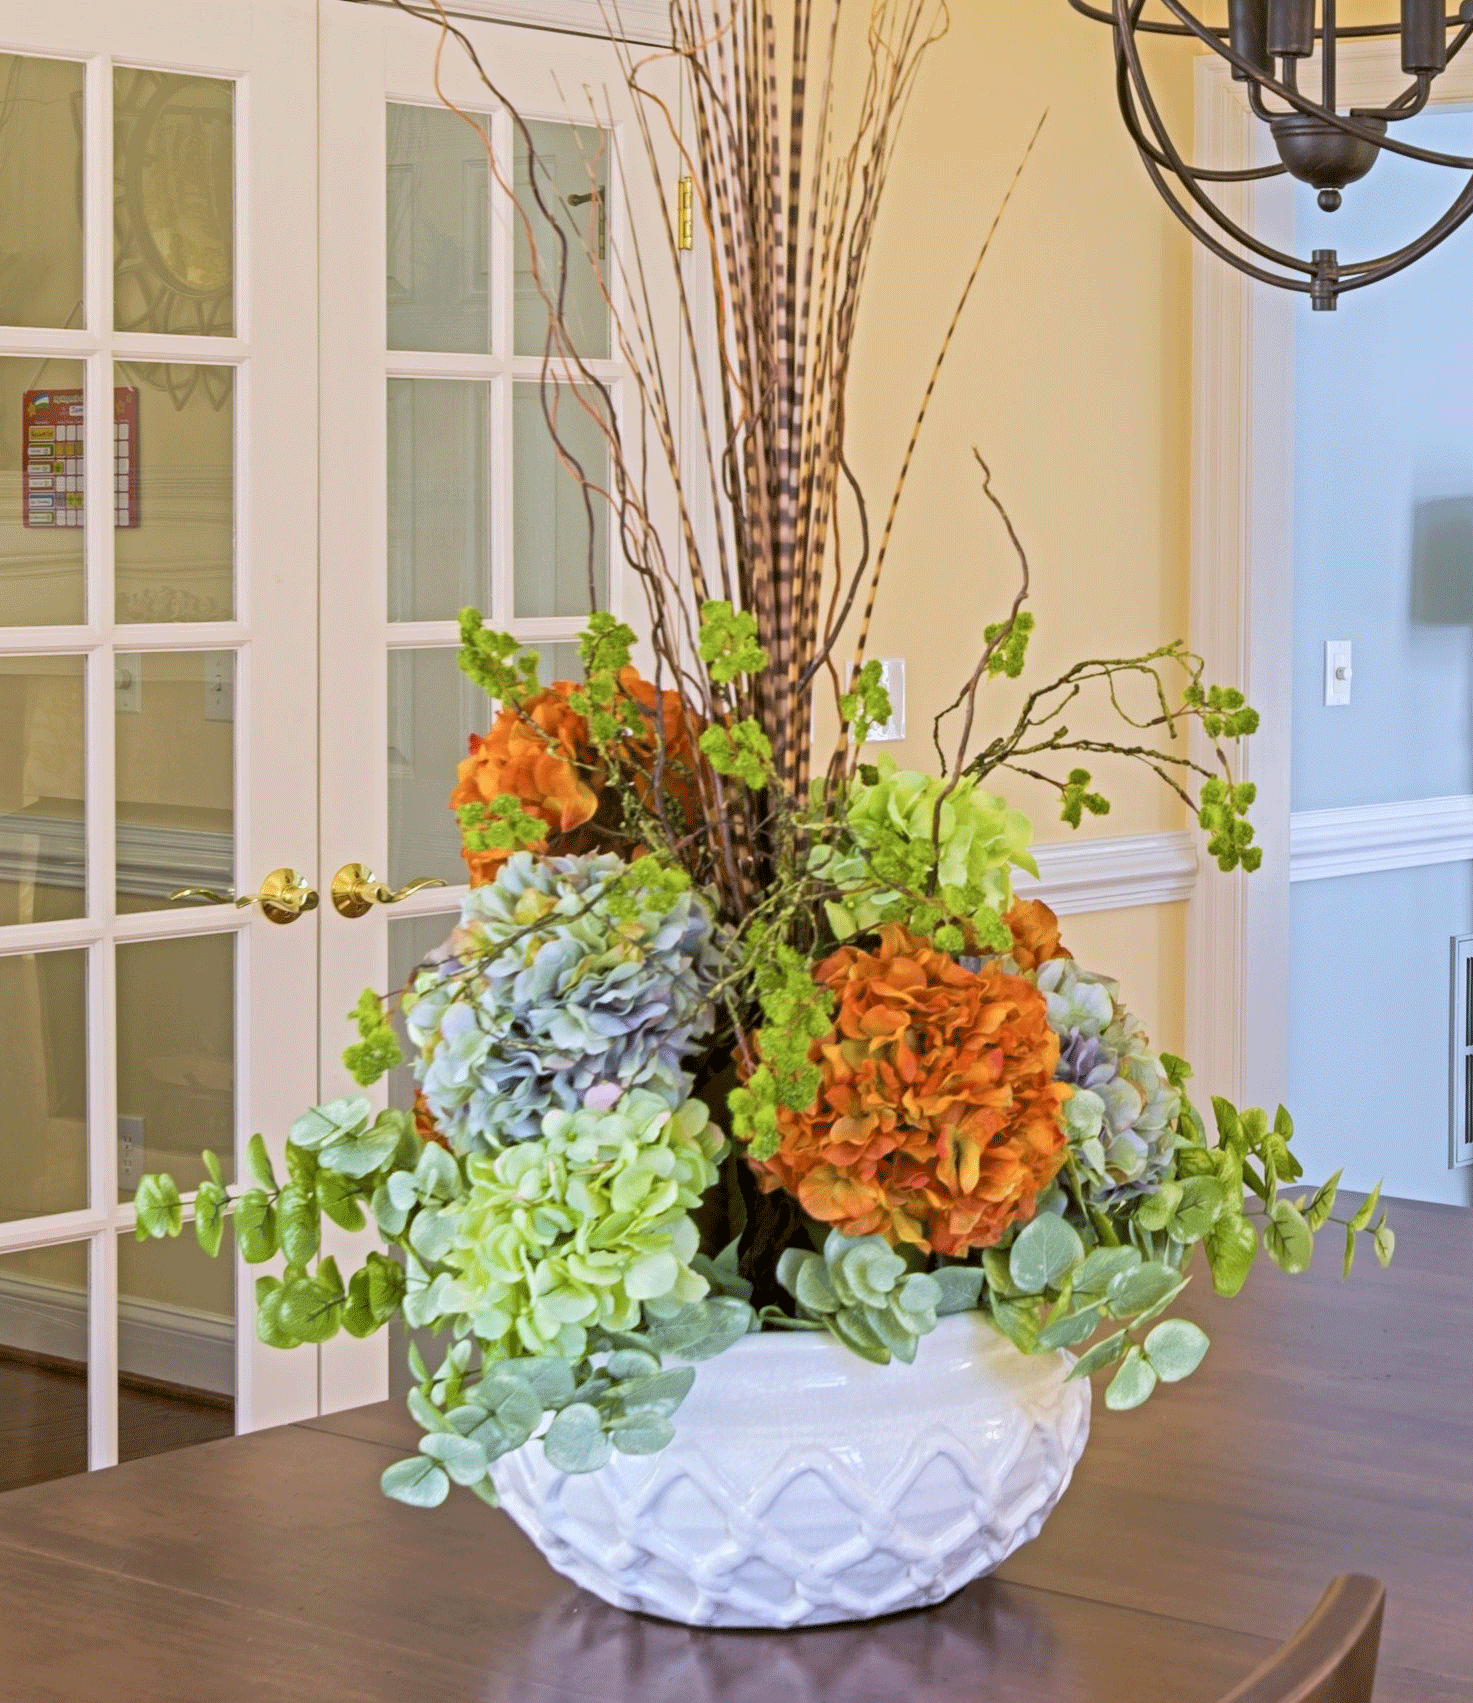 Dining room design with floral table arrangement